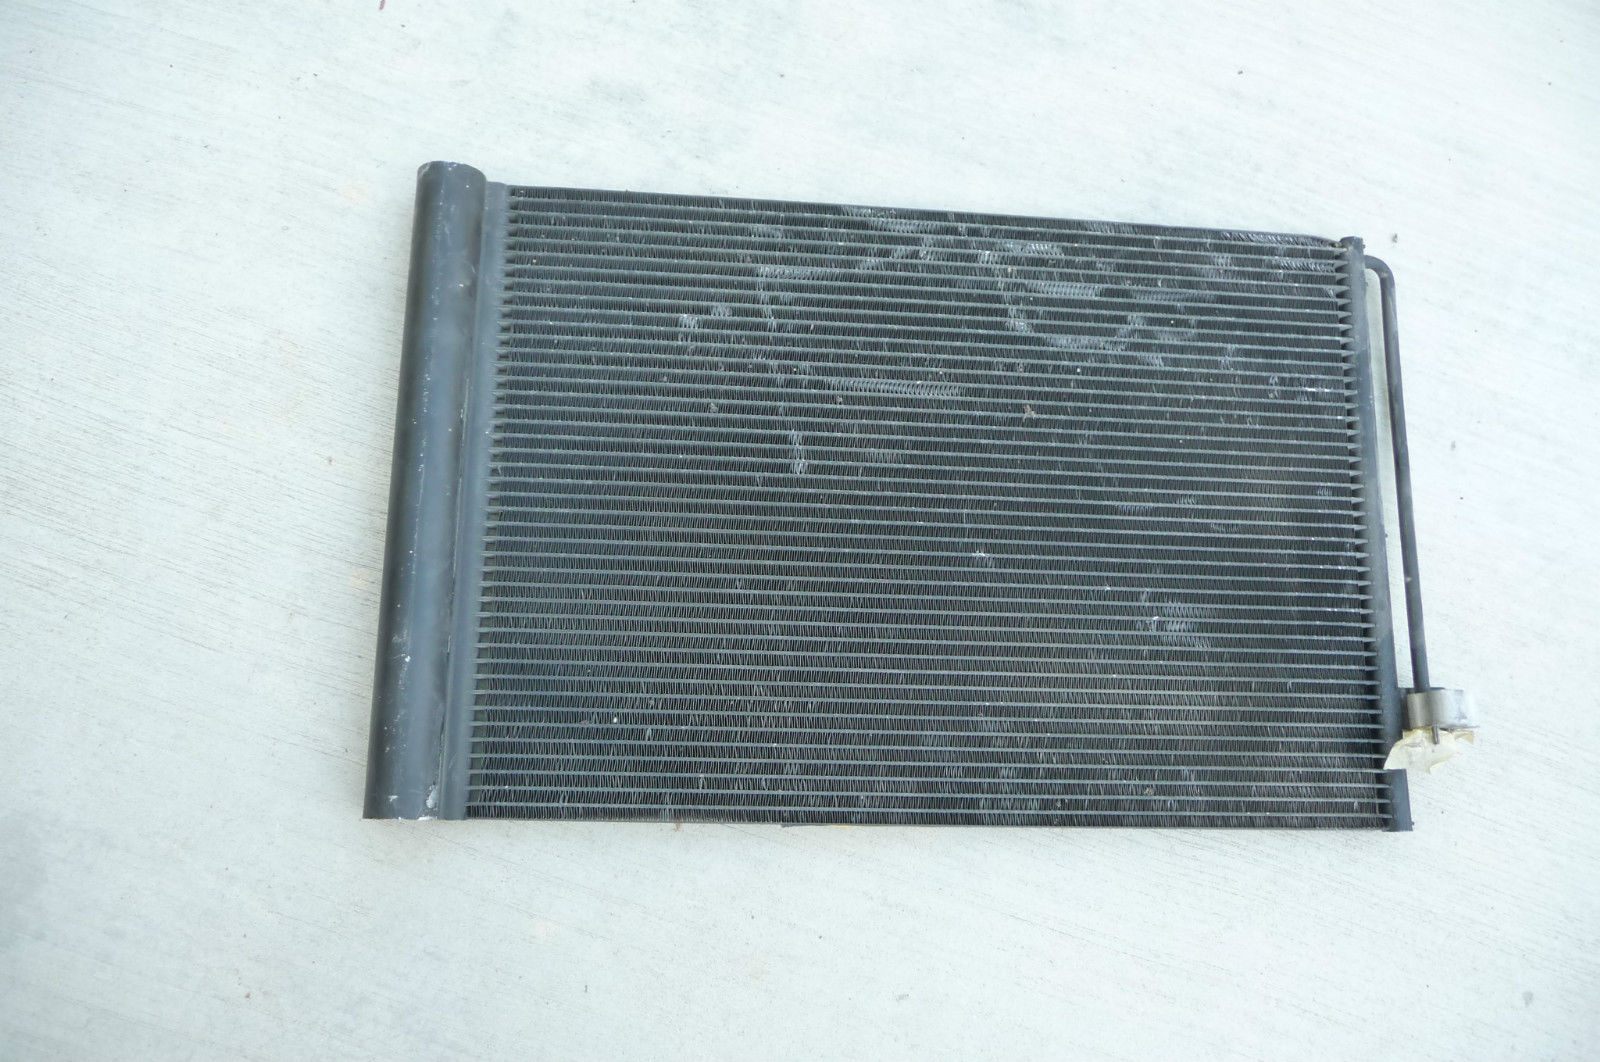 BMW 5 6 7 Series A/C Condenser with Air Conditioning Drier 64509122825 OEM OE